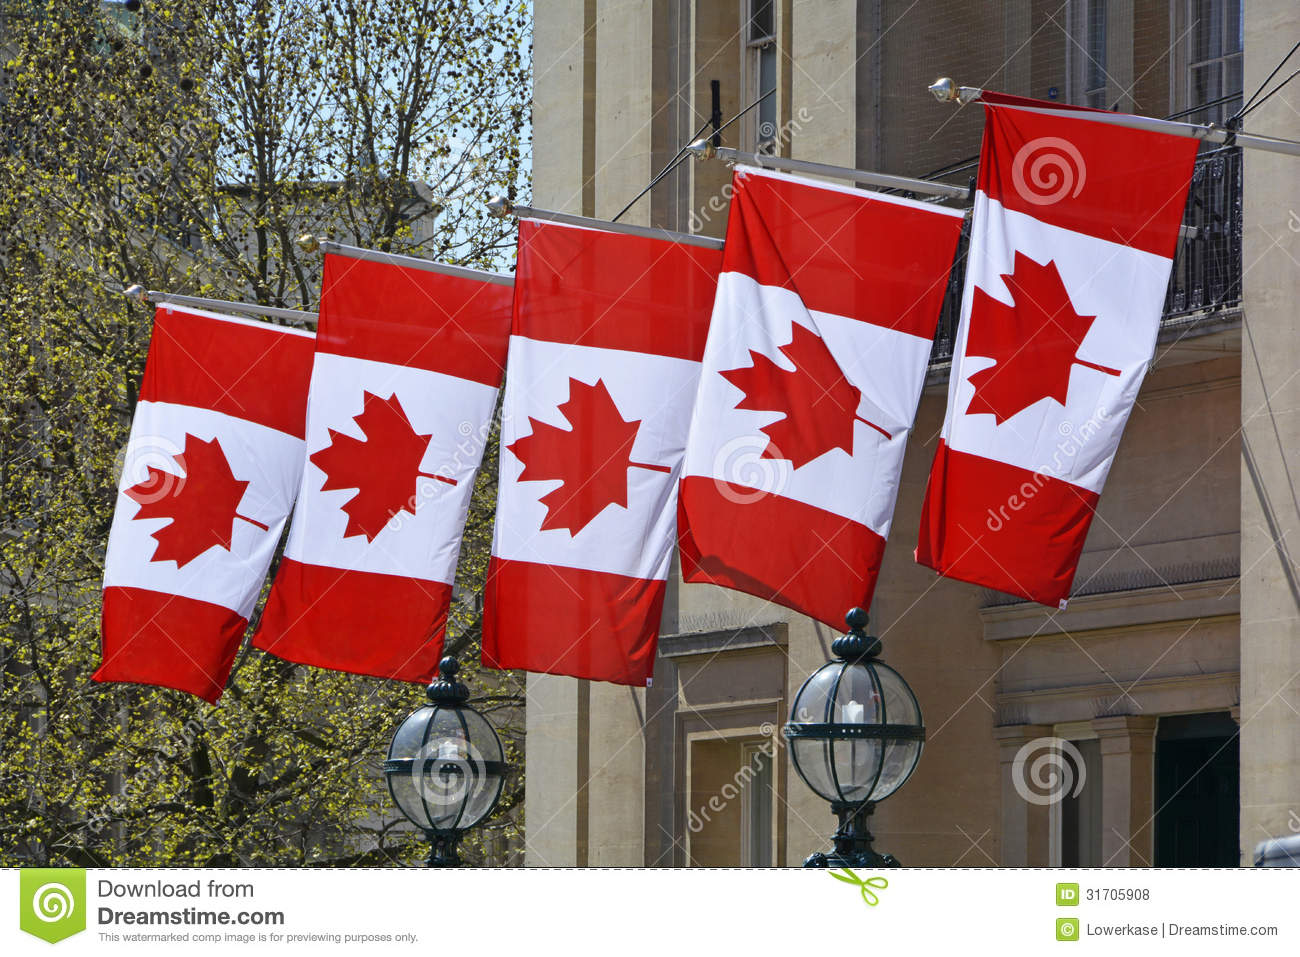 Clipart embassy london svg flags hanging from embassy | Clipart Panda - Free Clipart Images svg